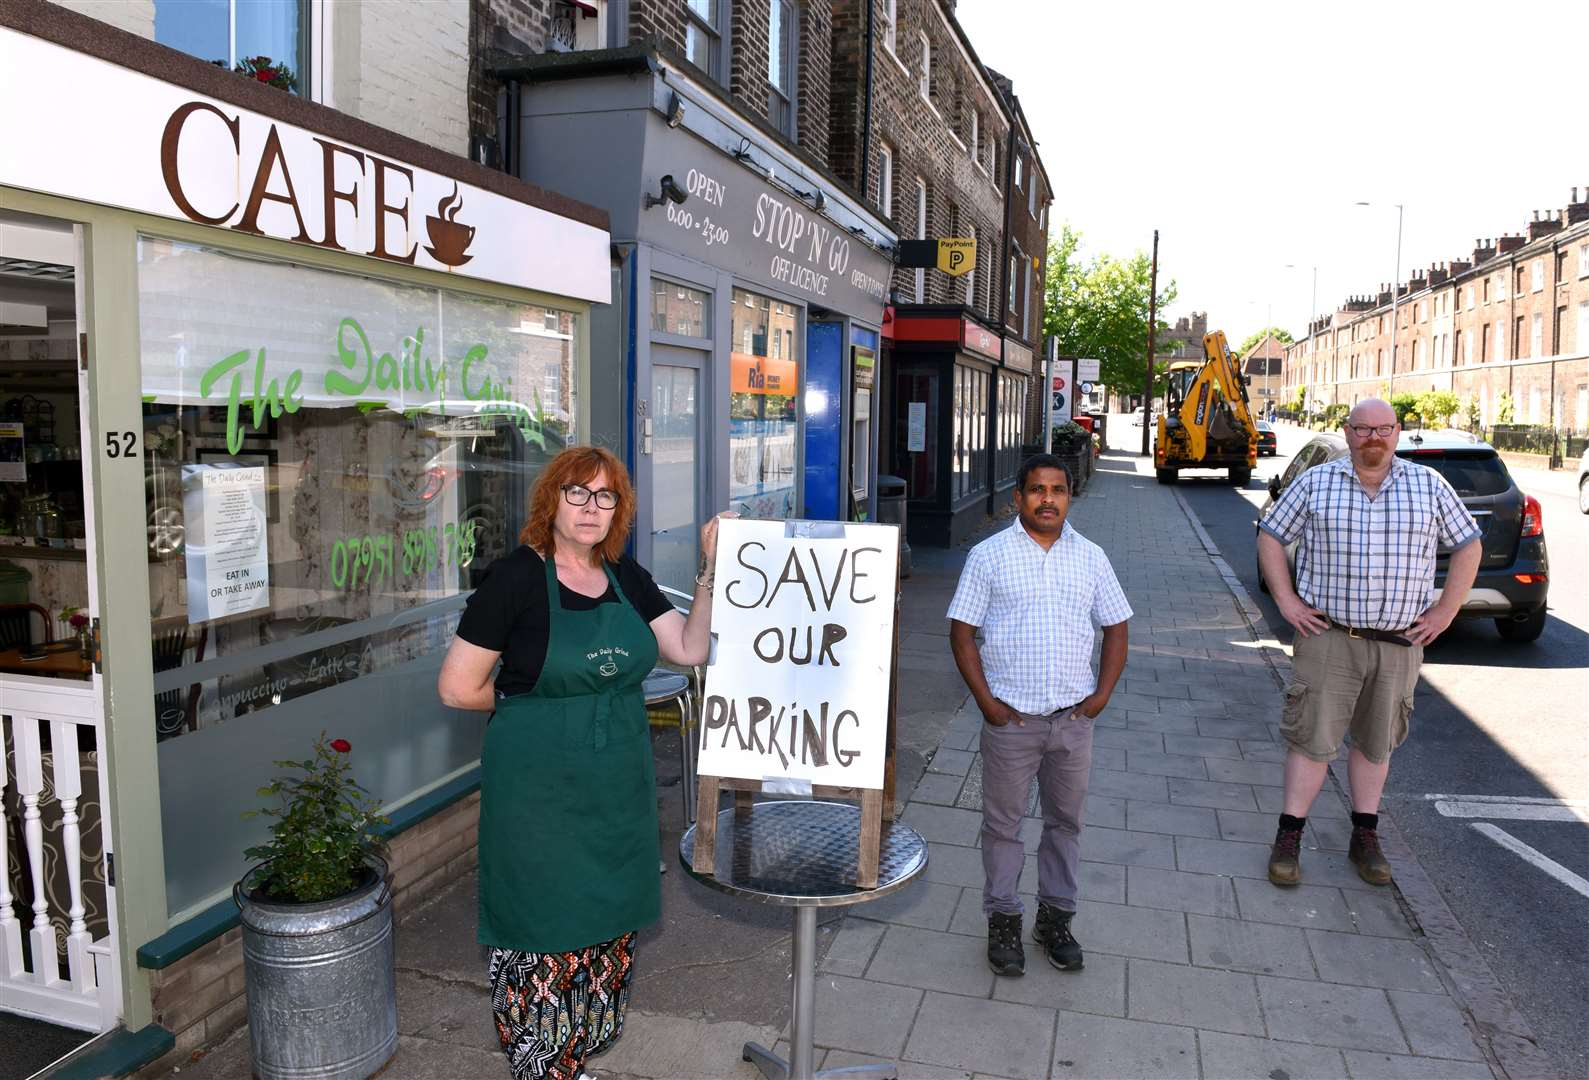 London Road Shops parking issues..Shop owners (LtoR), Mandy Bahar (The Daily Grind), Siva Nadarajan (Stop N Go), Robin Talbot (Tranquility).. (48034315)